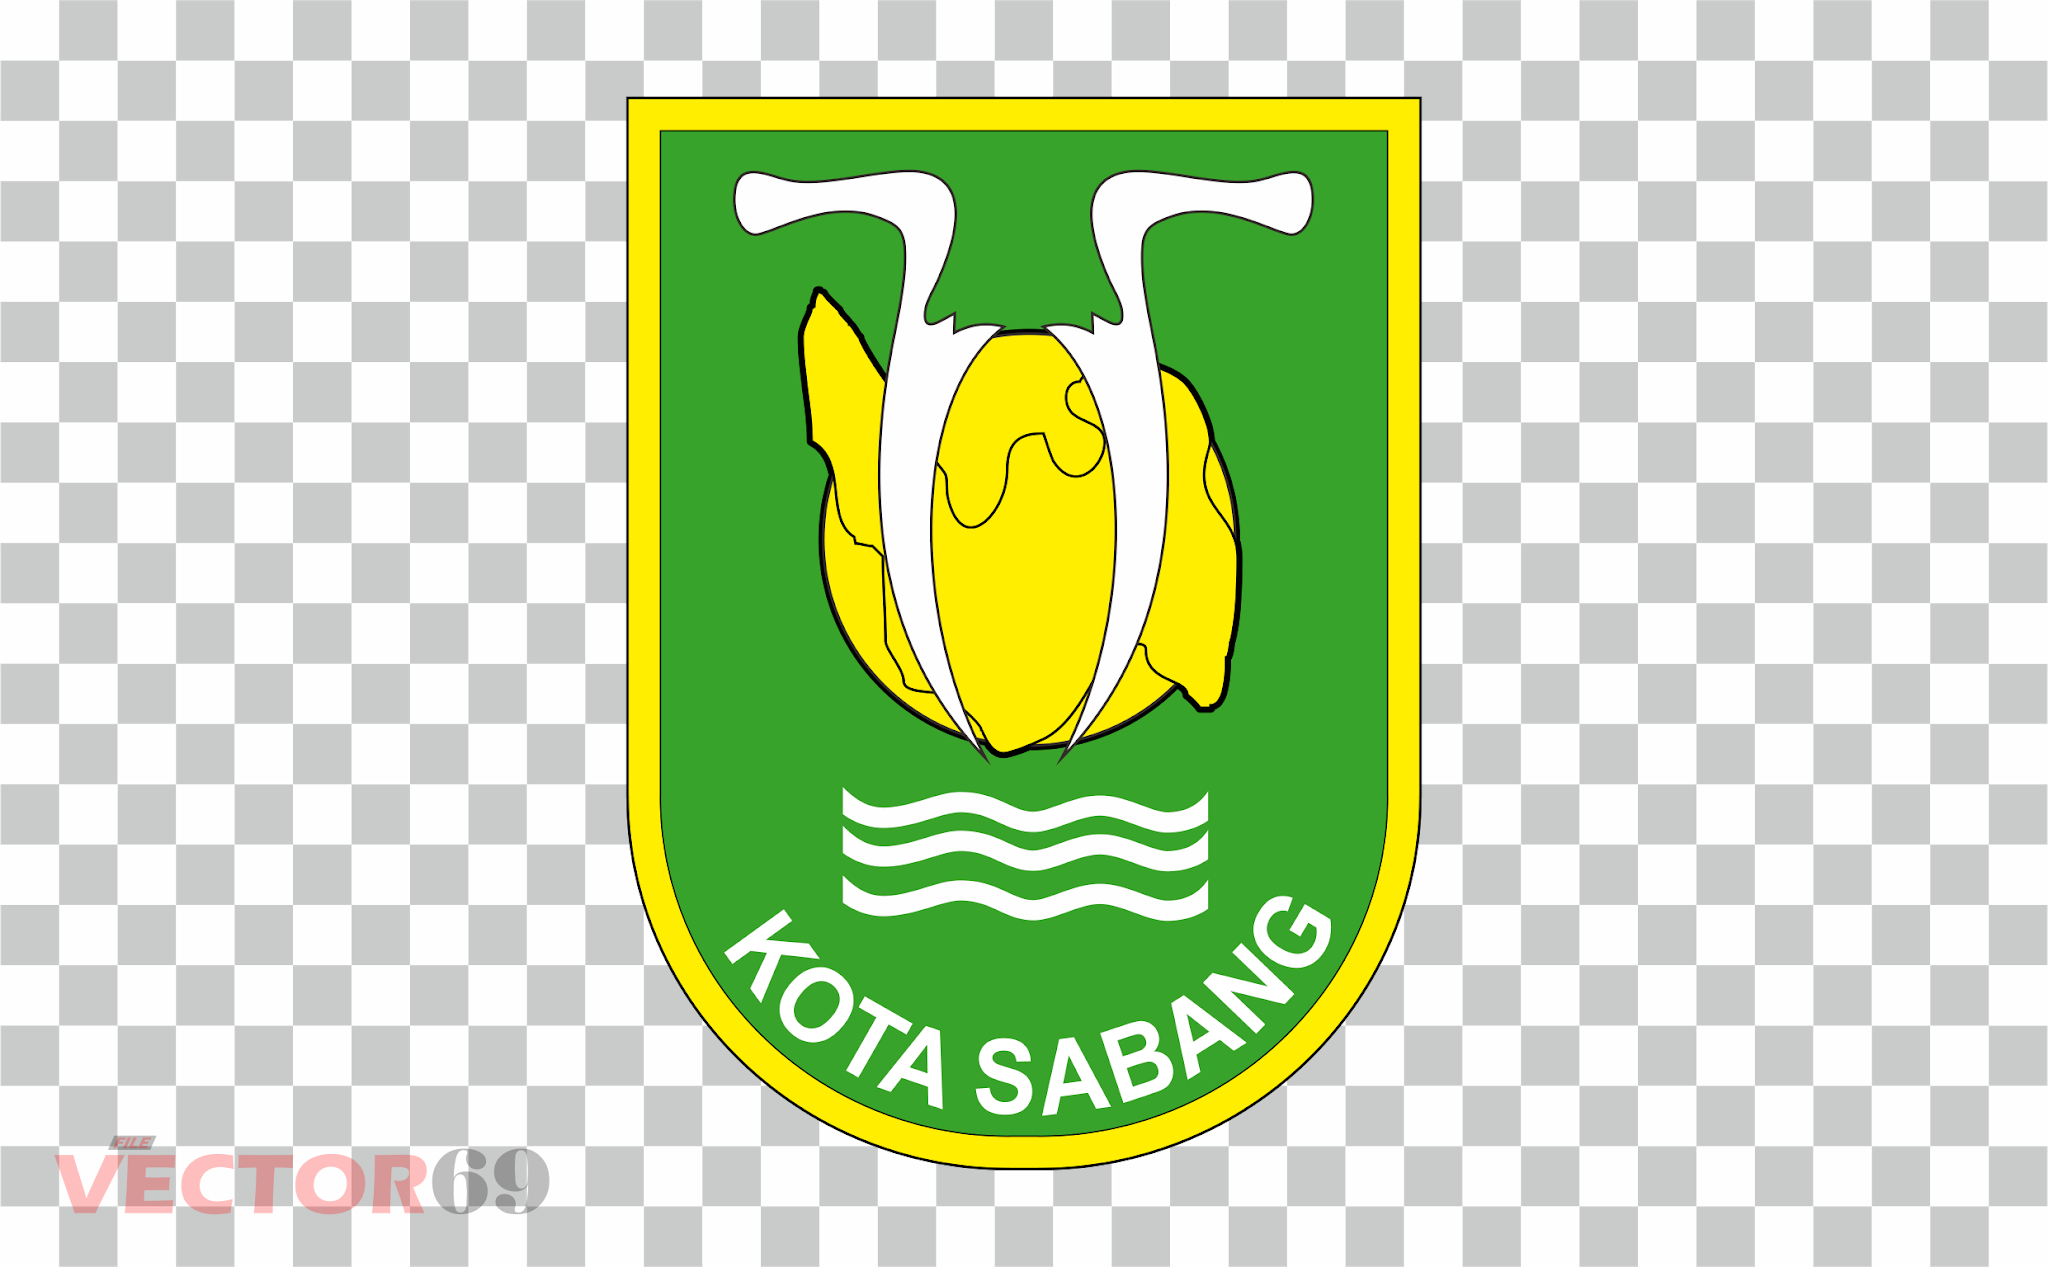 Kota Sabang Logo - Download Vector File PNG (Portable Network Graphics)